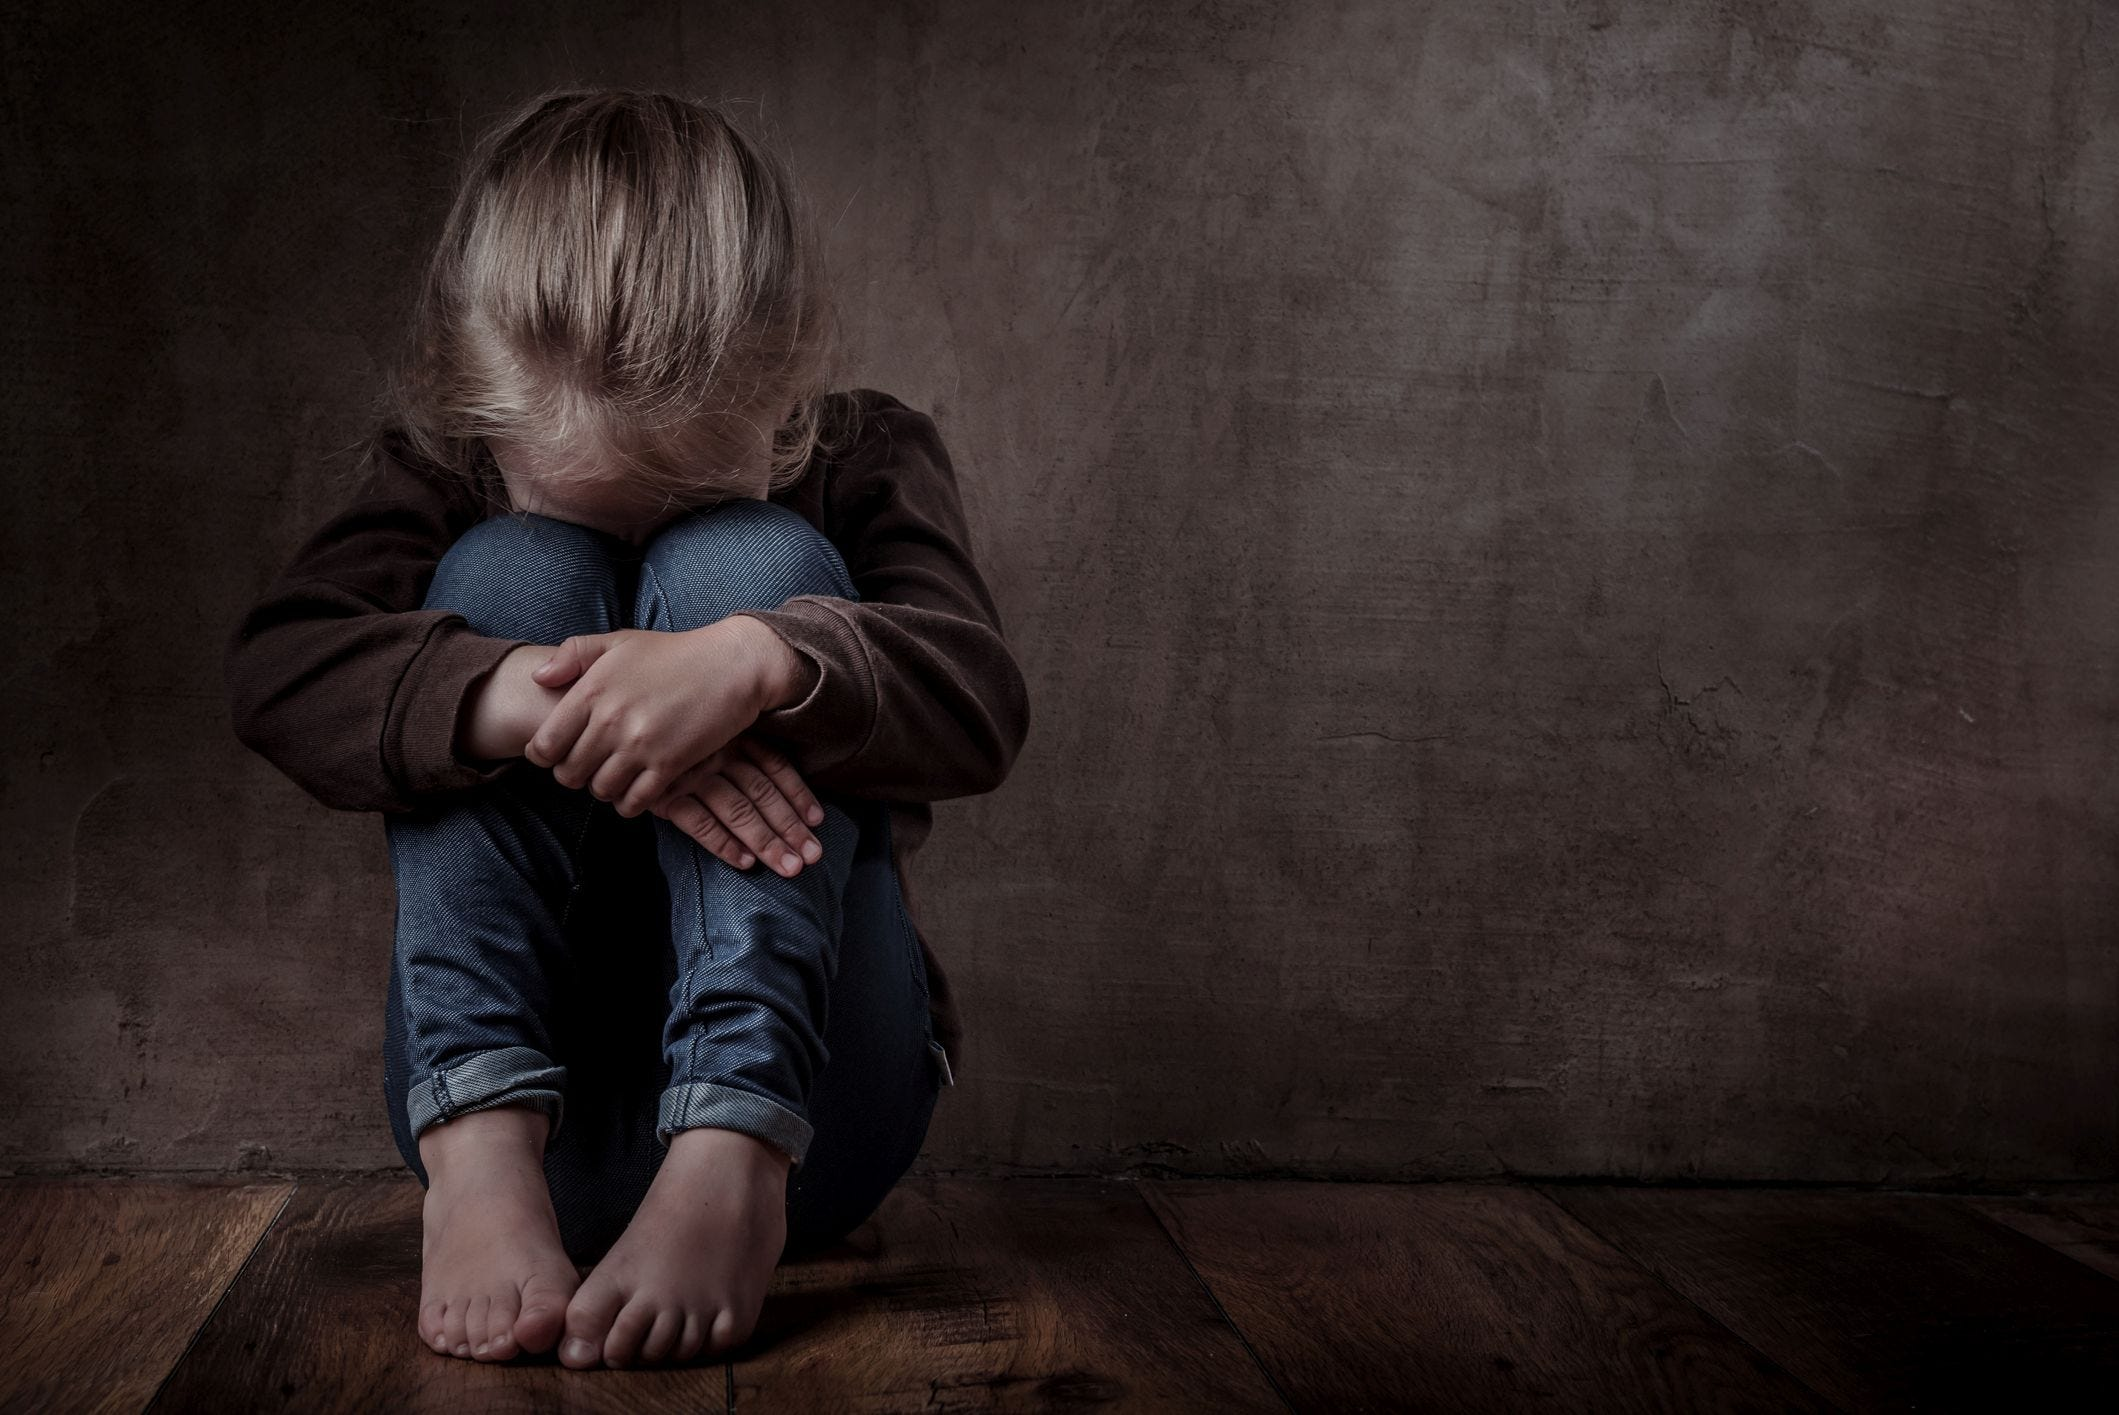 Negative effects on physical violence used on children as punishment for undesireable behavior